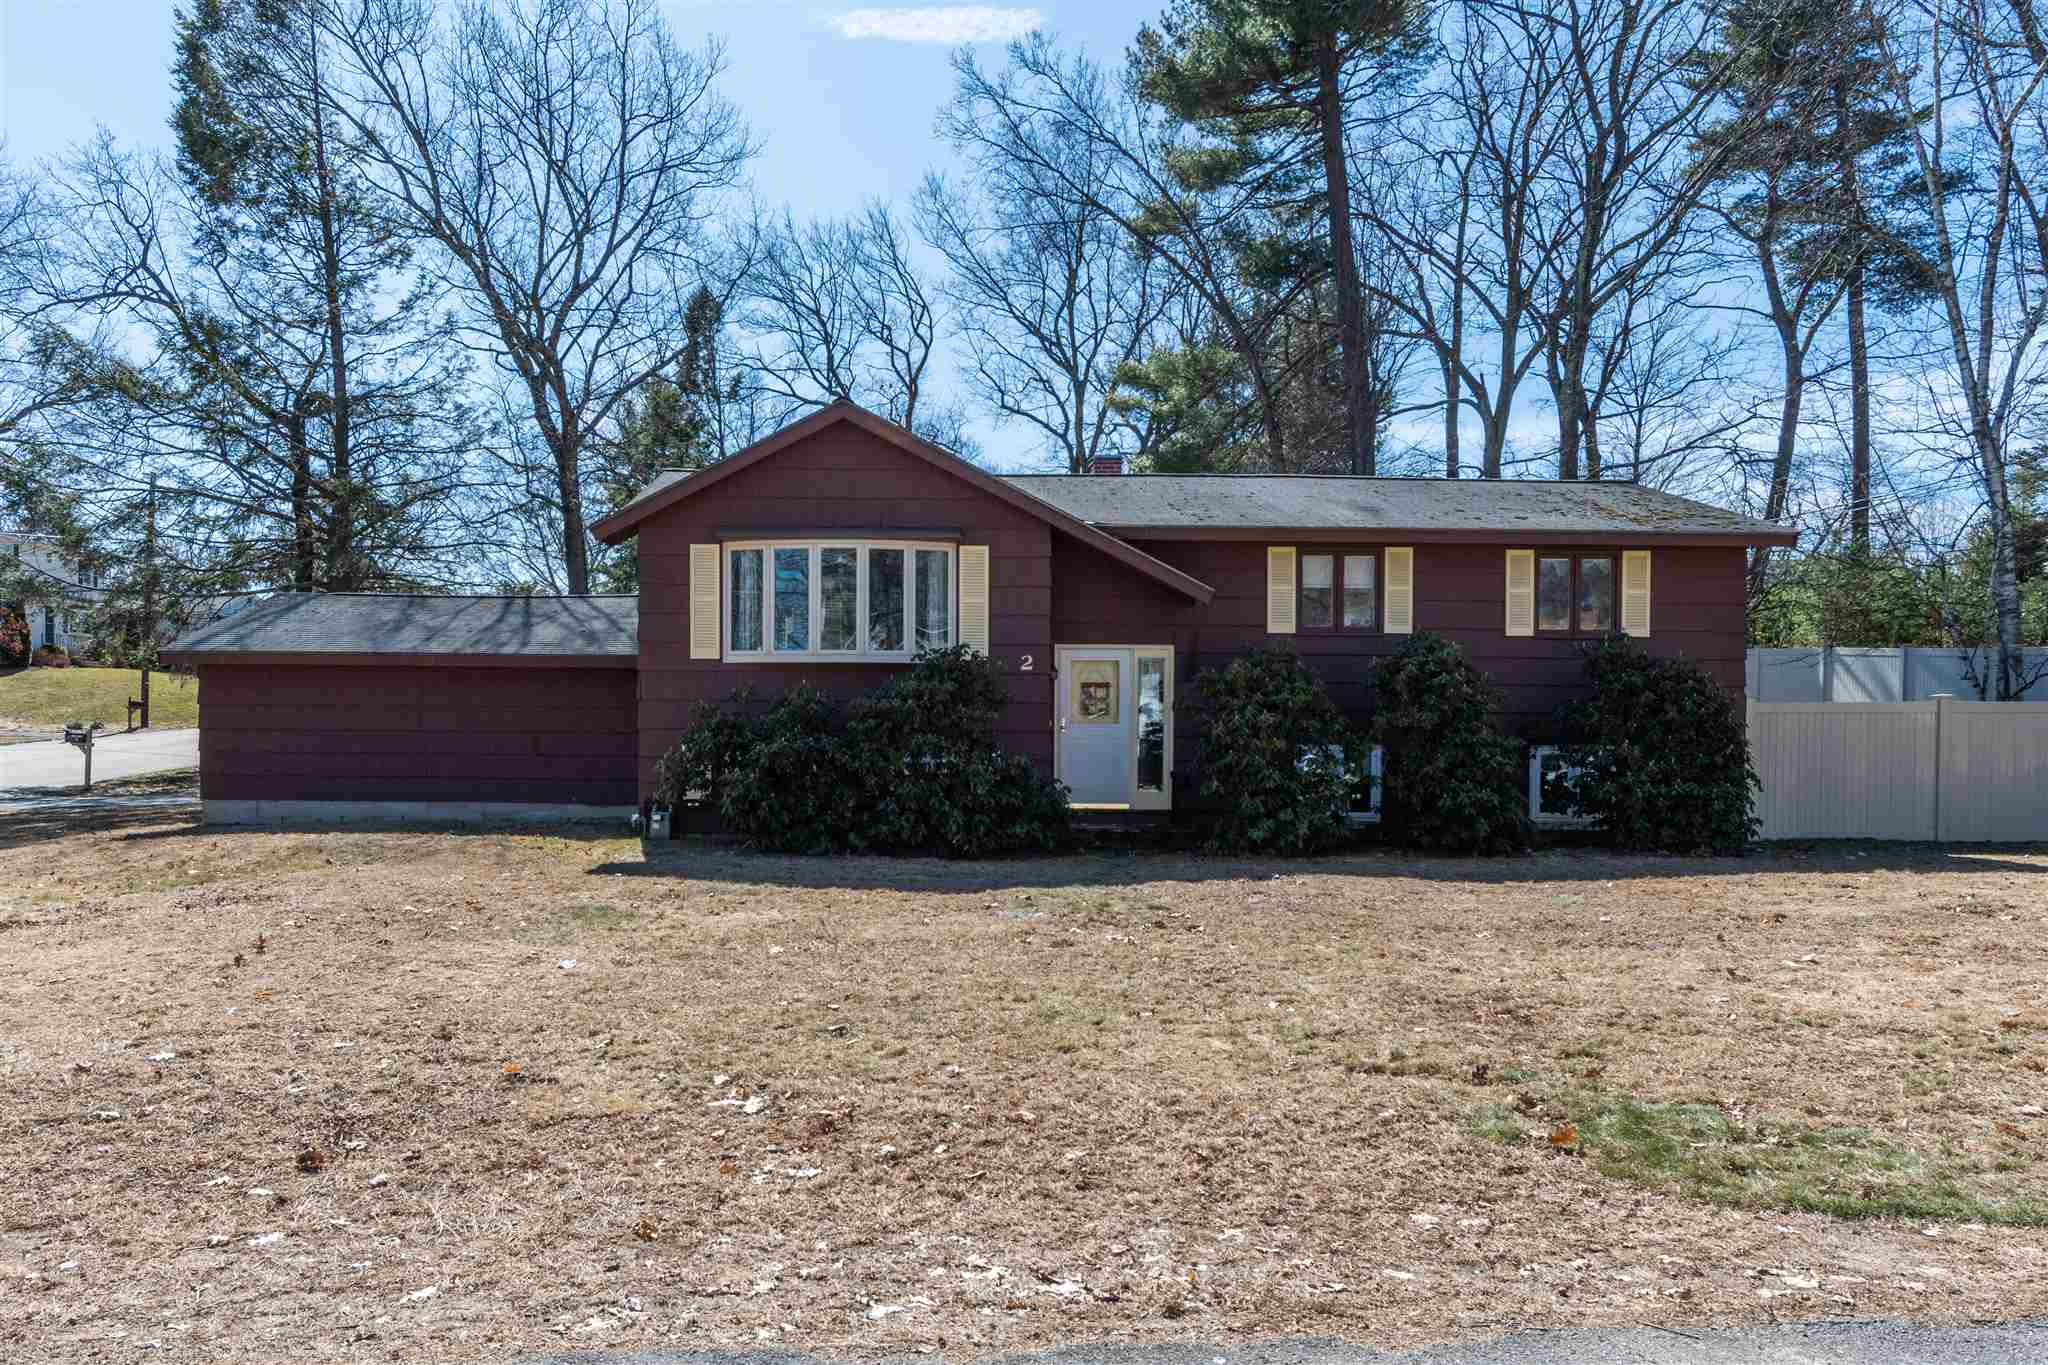 Photo of 2 Aldgate Drive Nashua NH 03062